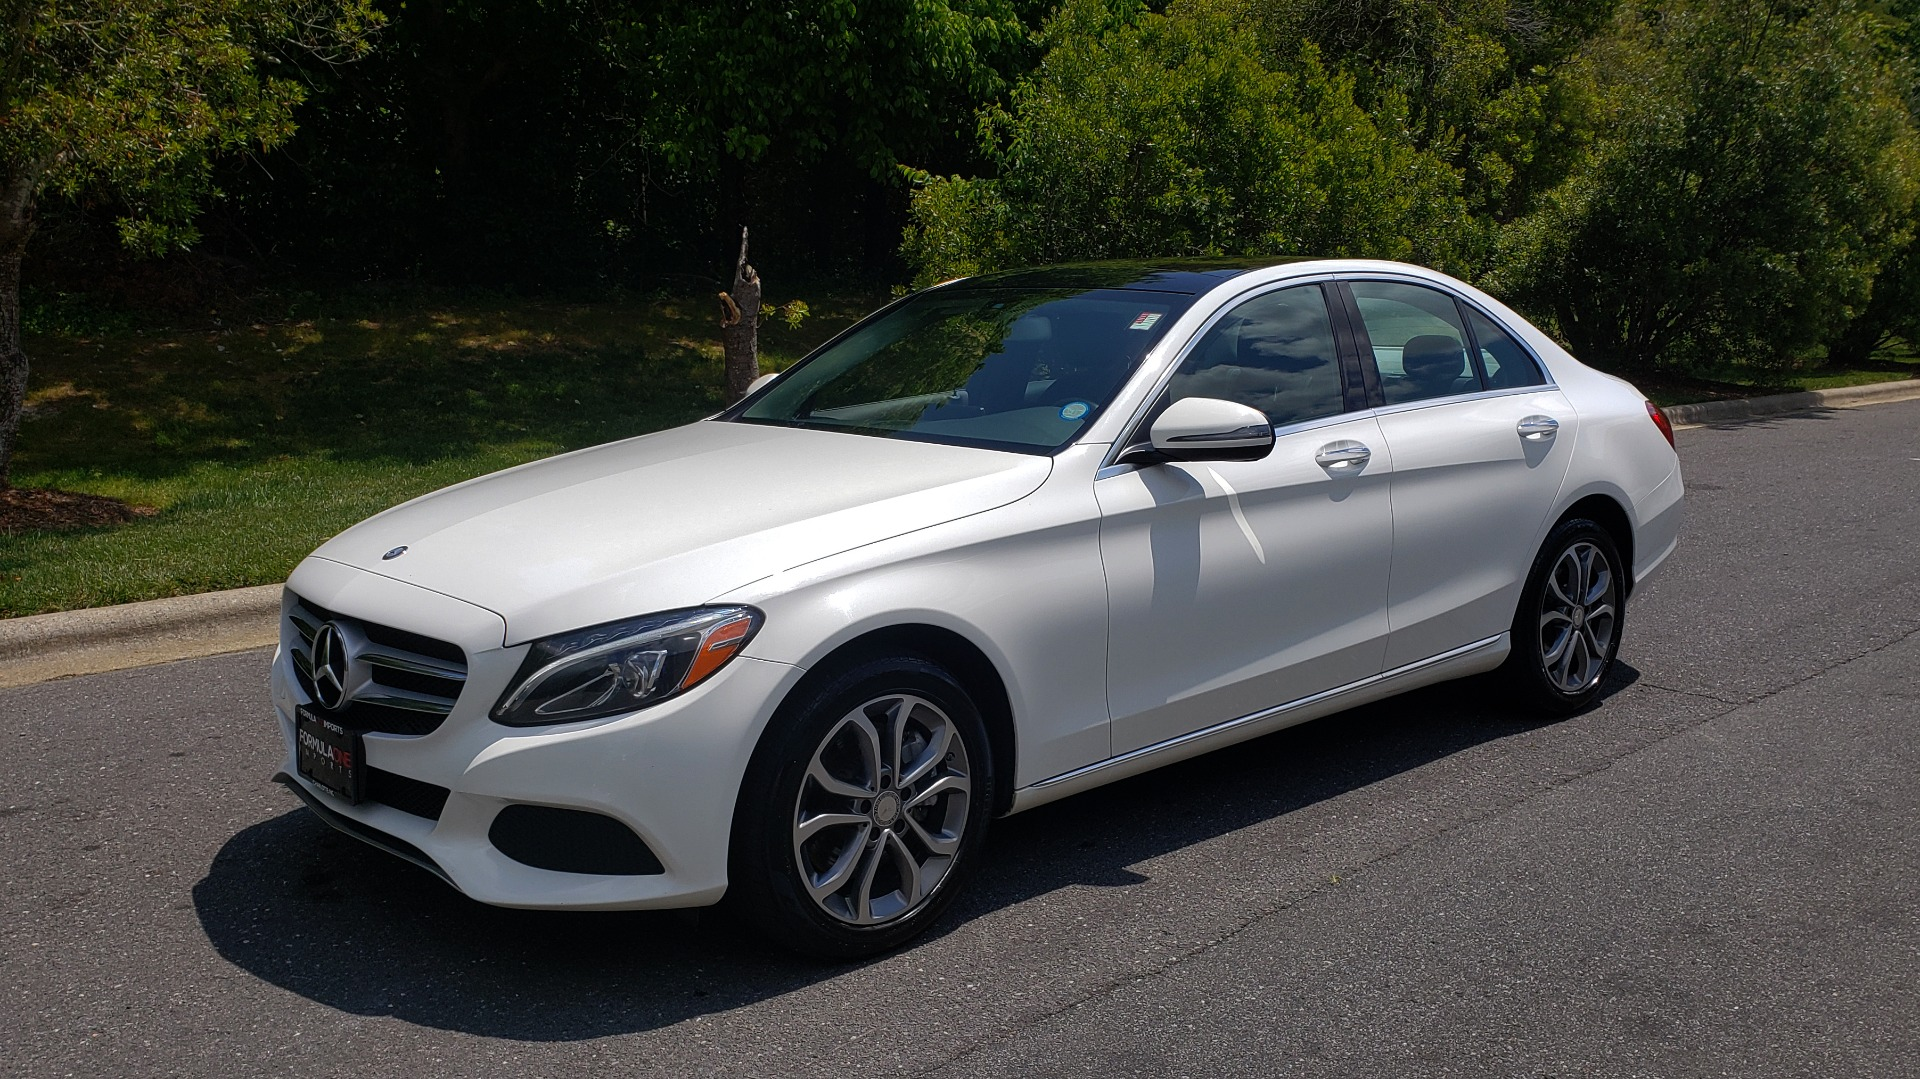 Used 2016 Mercedes-Benz C-CLASS C 300 4MATIC PREMIUM / PANO-ROOF / MULTI MEDIA PKG / REARVIEW for sale Sold at Formula Imports in Charlotte NC 28227 1